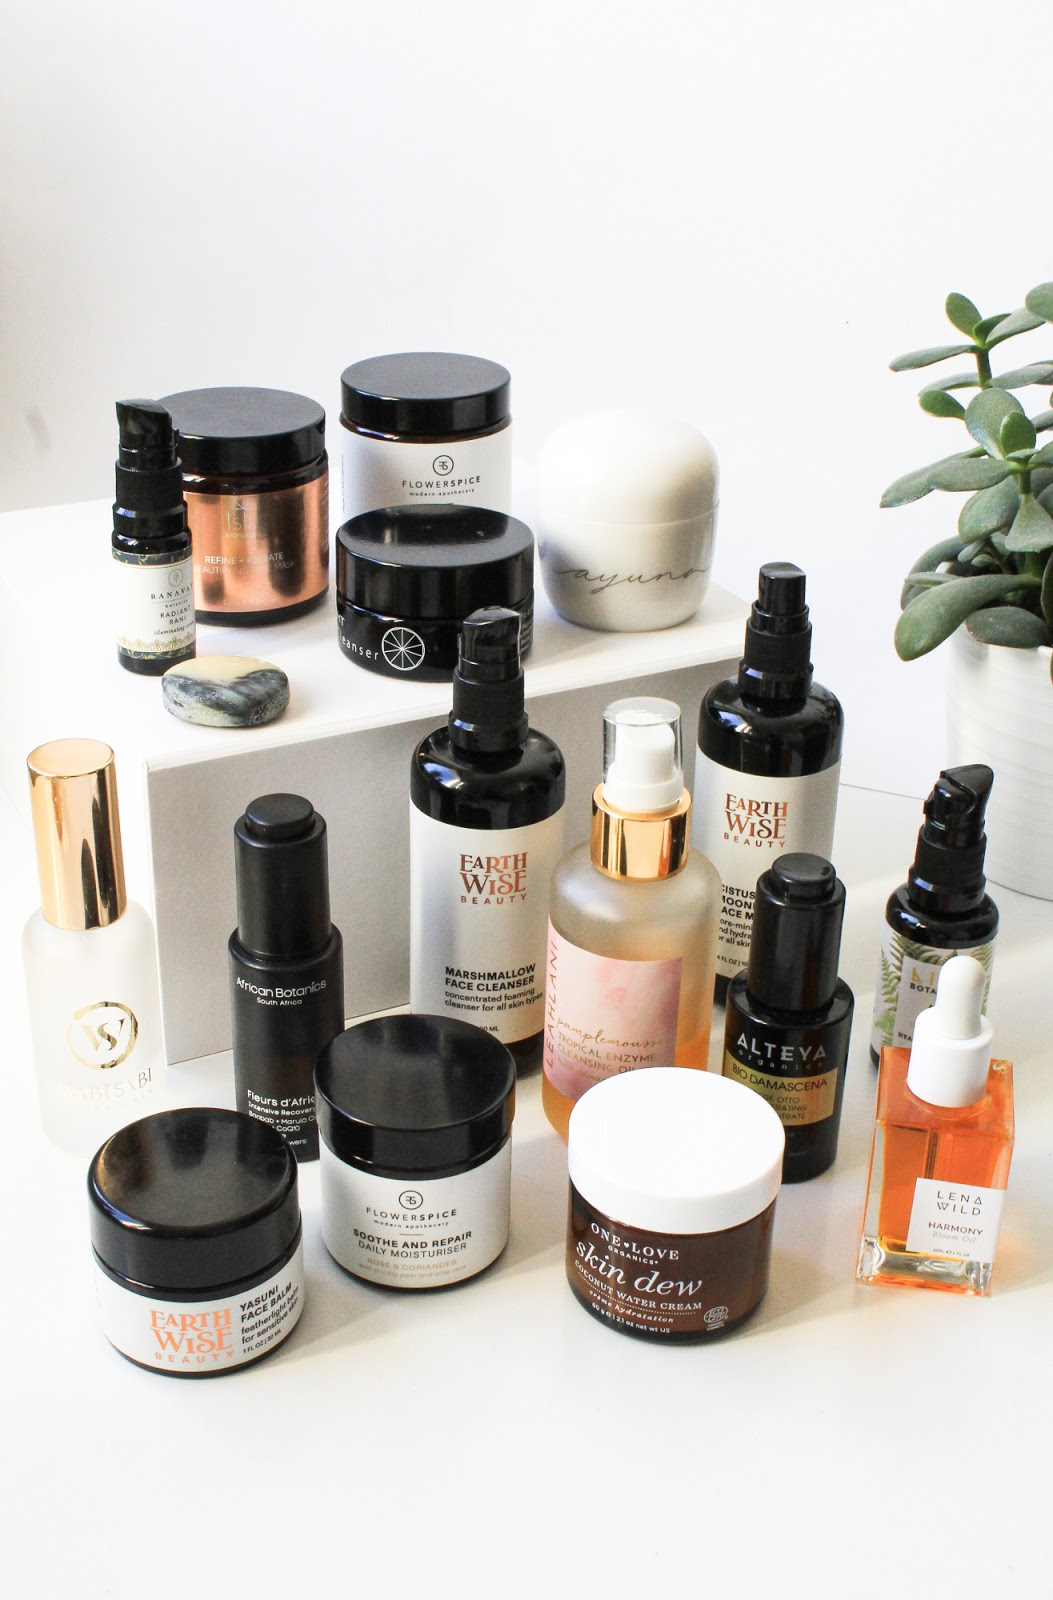 New Discoveries, favourites from 2018. Earthwise Beauty, Ayuna, Lena Wild, Ranavat Botanics, Wabi Sabi Botanicals, Flower and Spice, alteya Organics, One Love Organics, Live Botanical, Isla Apothecary, Leahlani Skincare